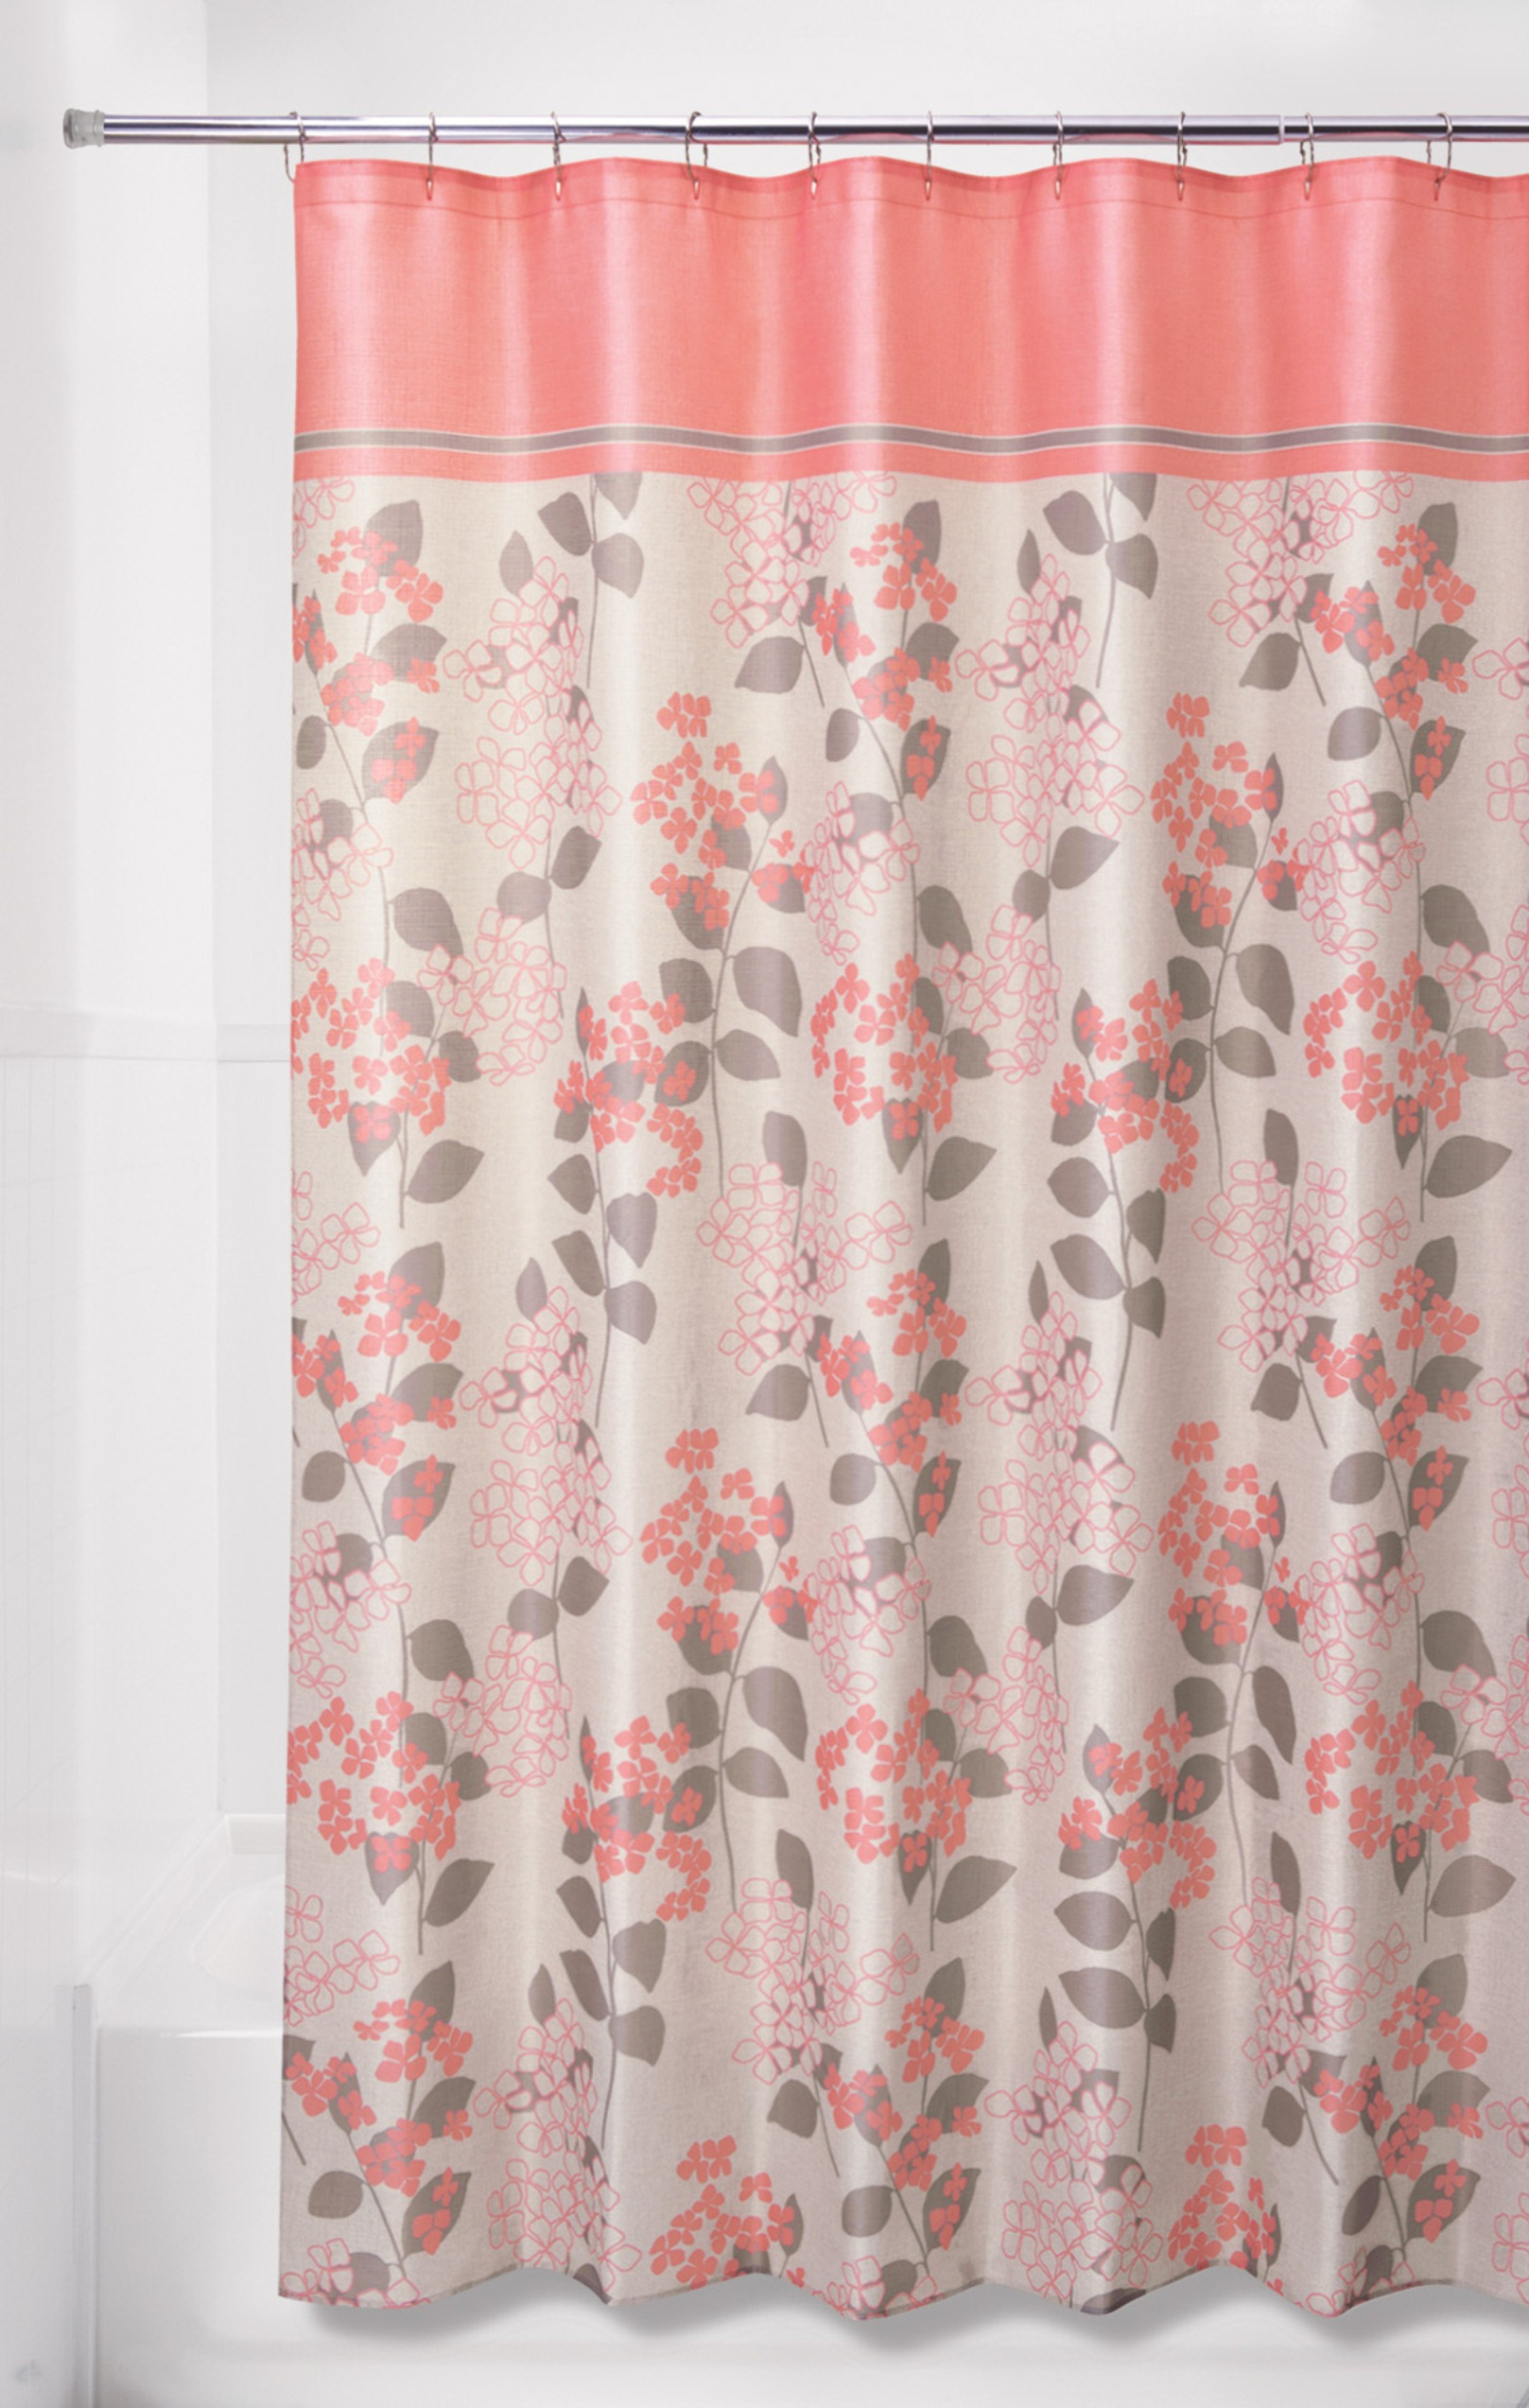 Colormate Floral Shower Curtain